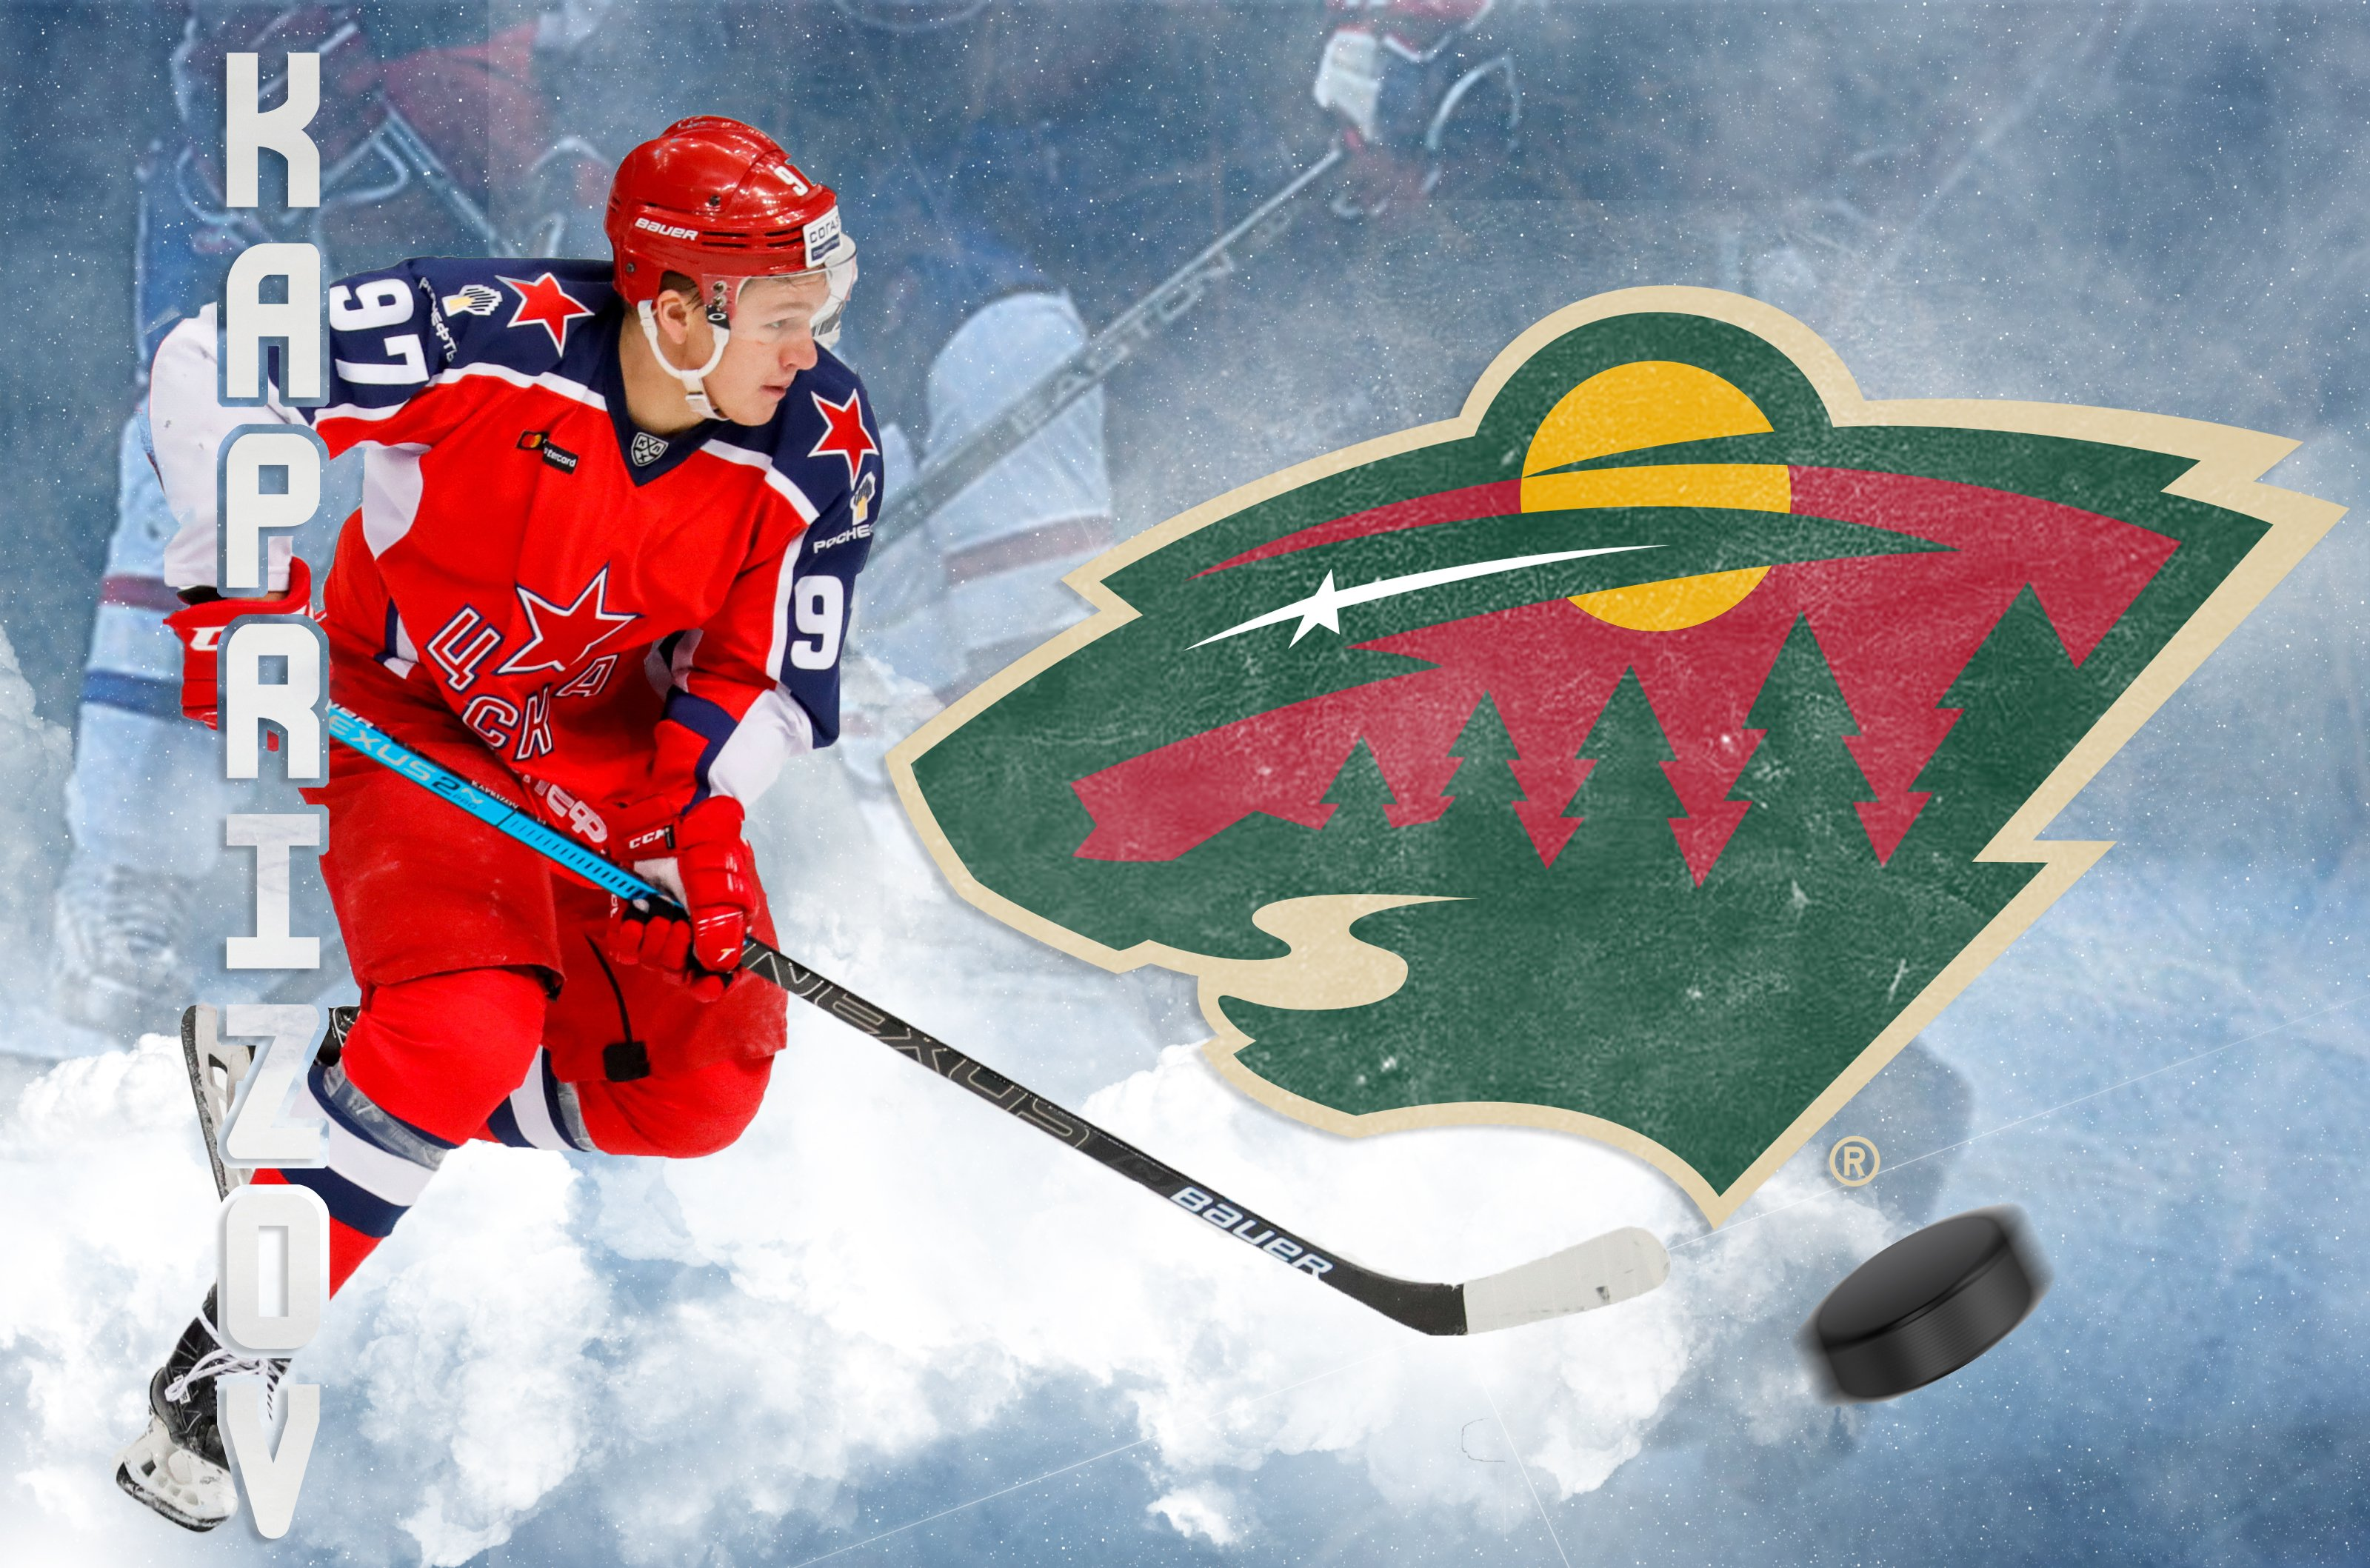 One of the best KHL players becomes a Minnesota Wild